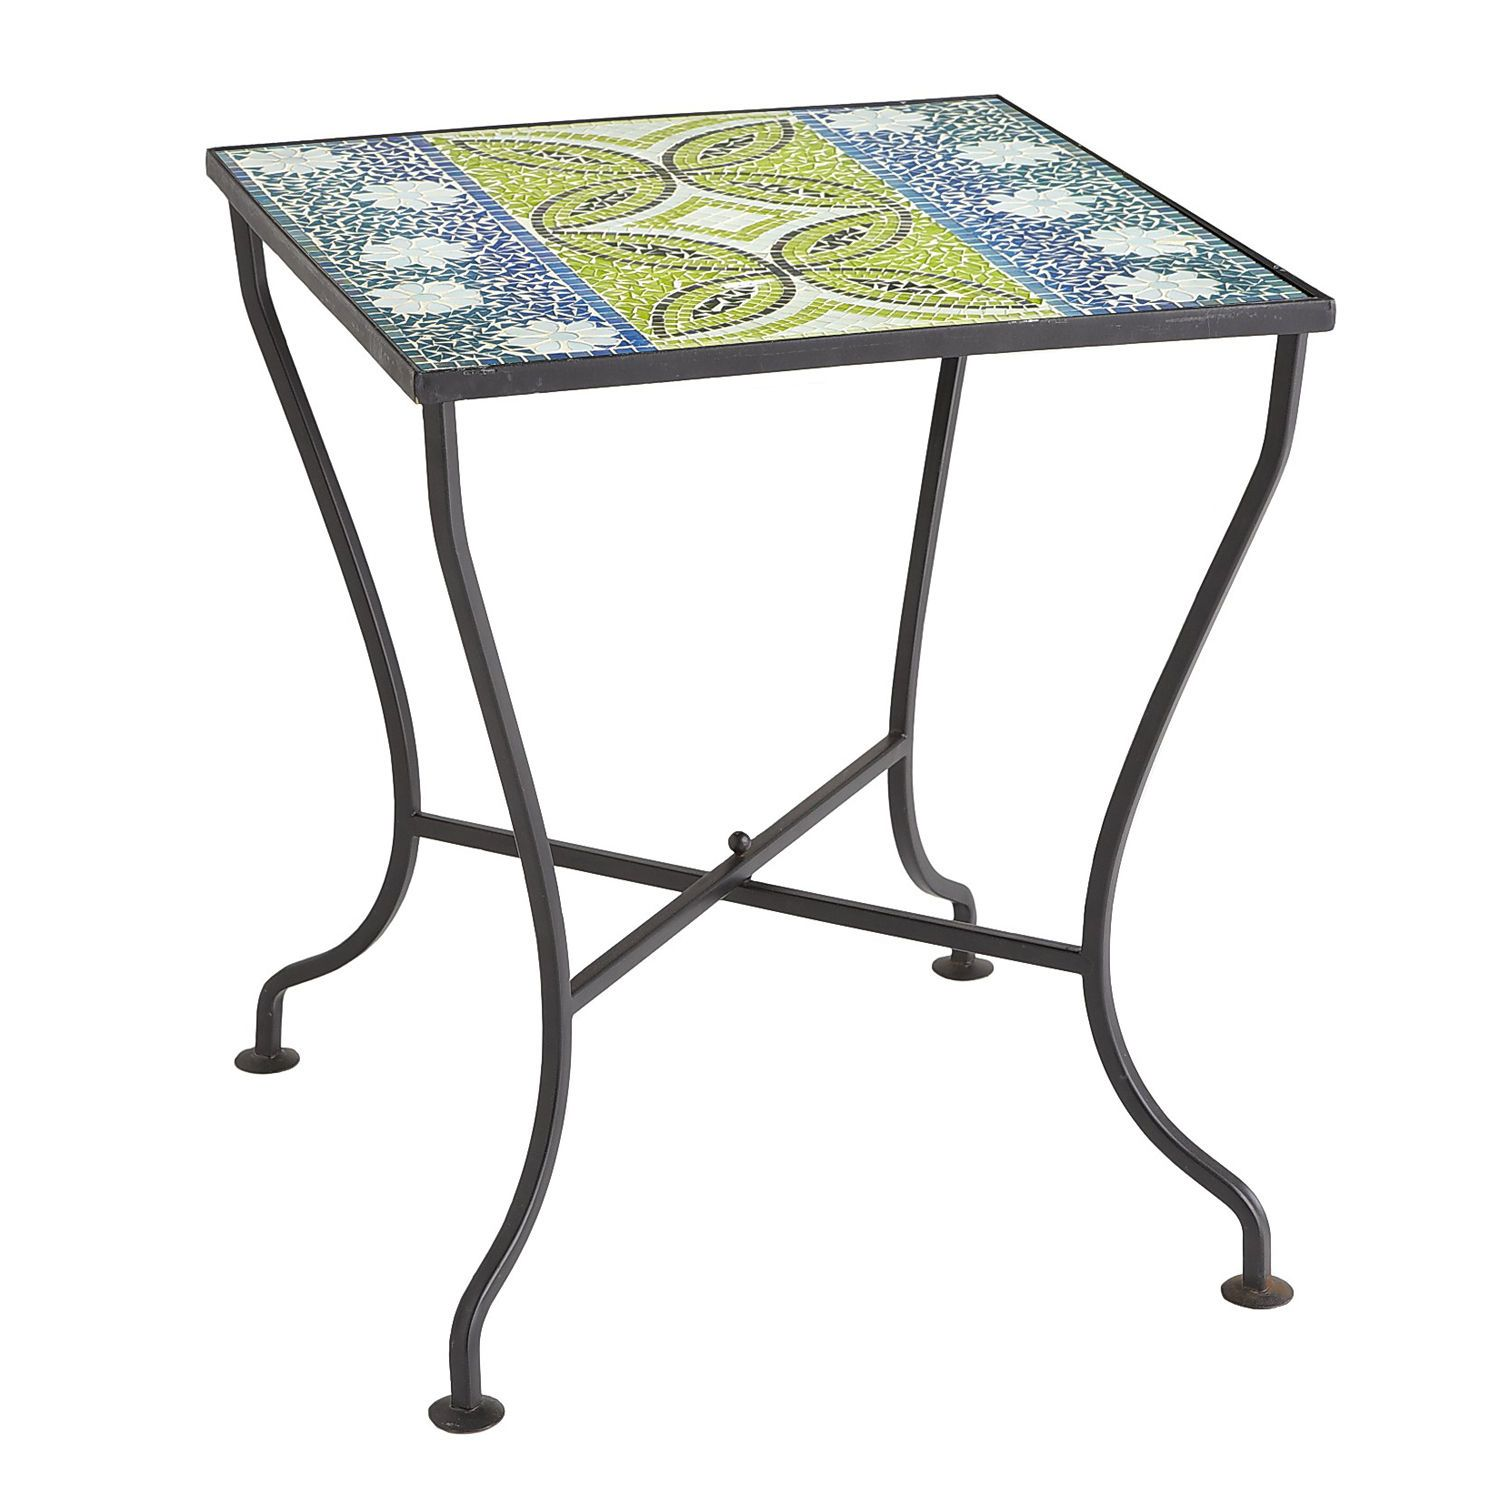 Lani Mosaic Accent Table Pier Imports Home Decor Pinterest - Pier 1 outdoor coffee table